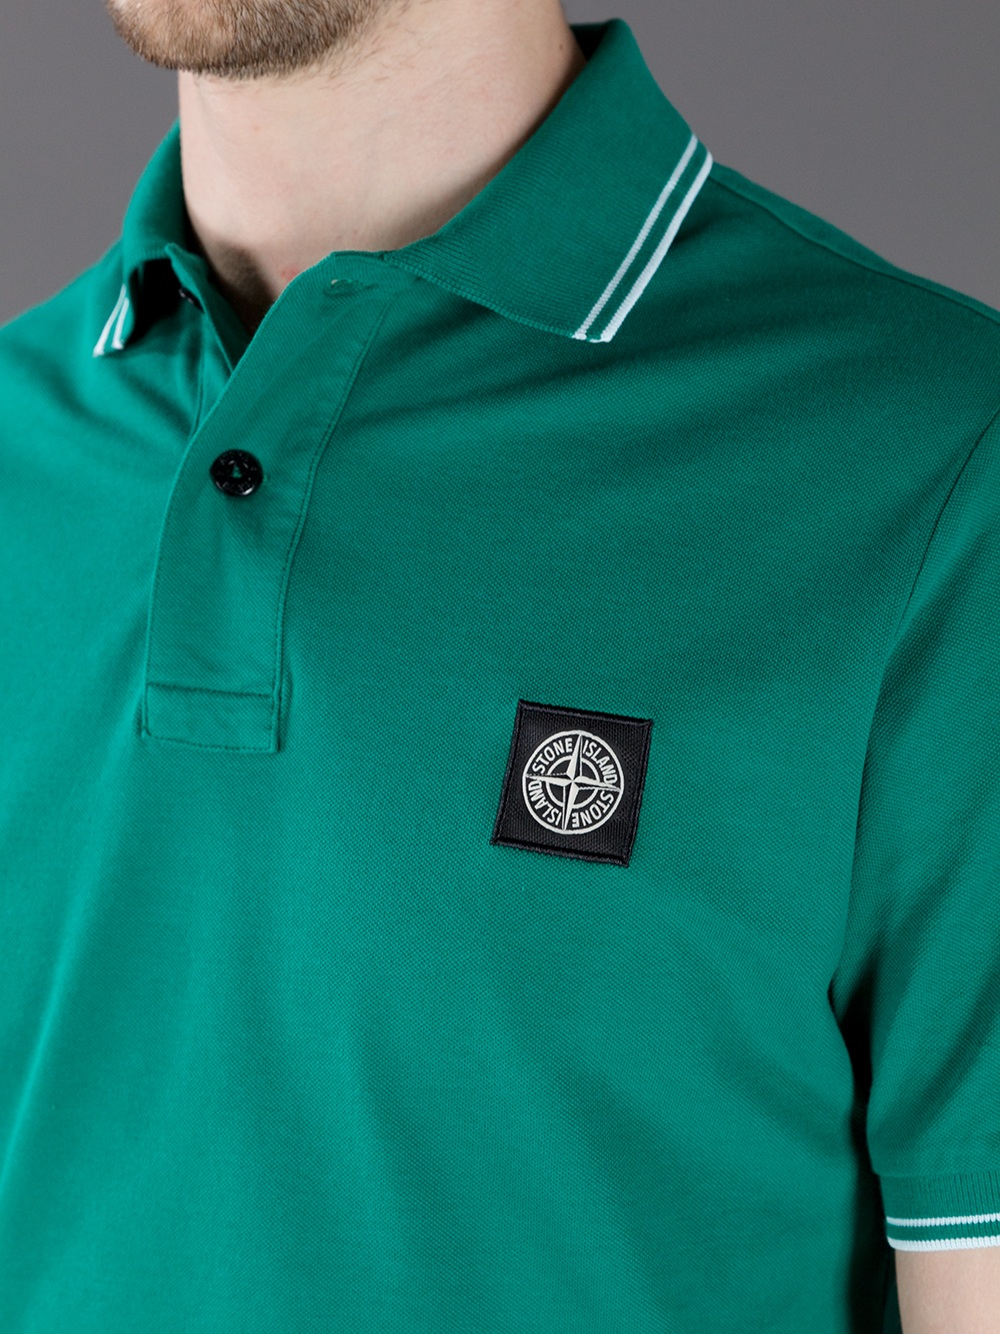 Lyst Stone Island Pique Polo Shirt In Green For Men